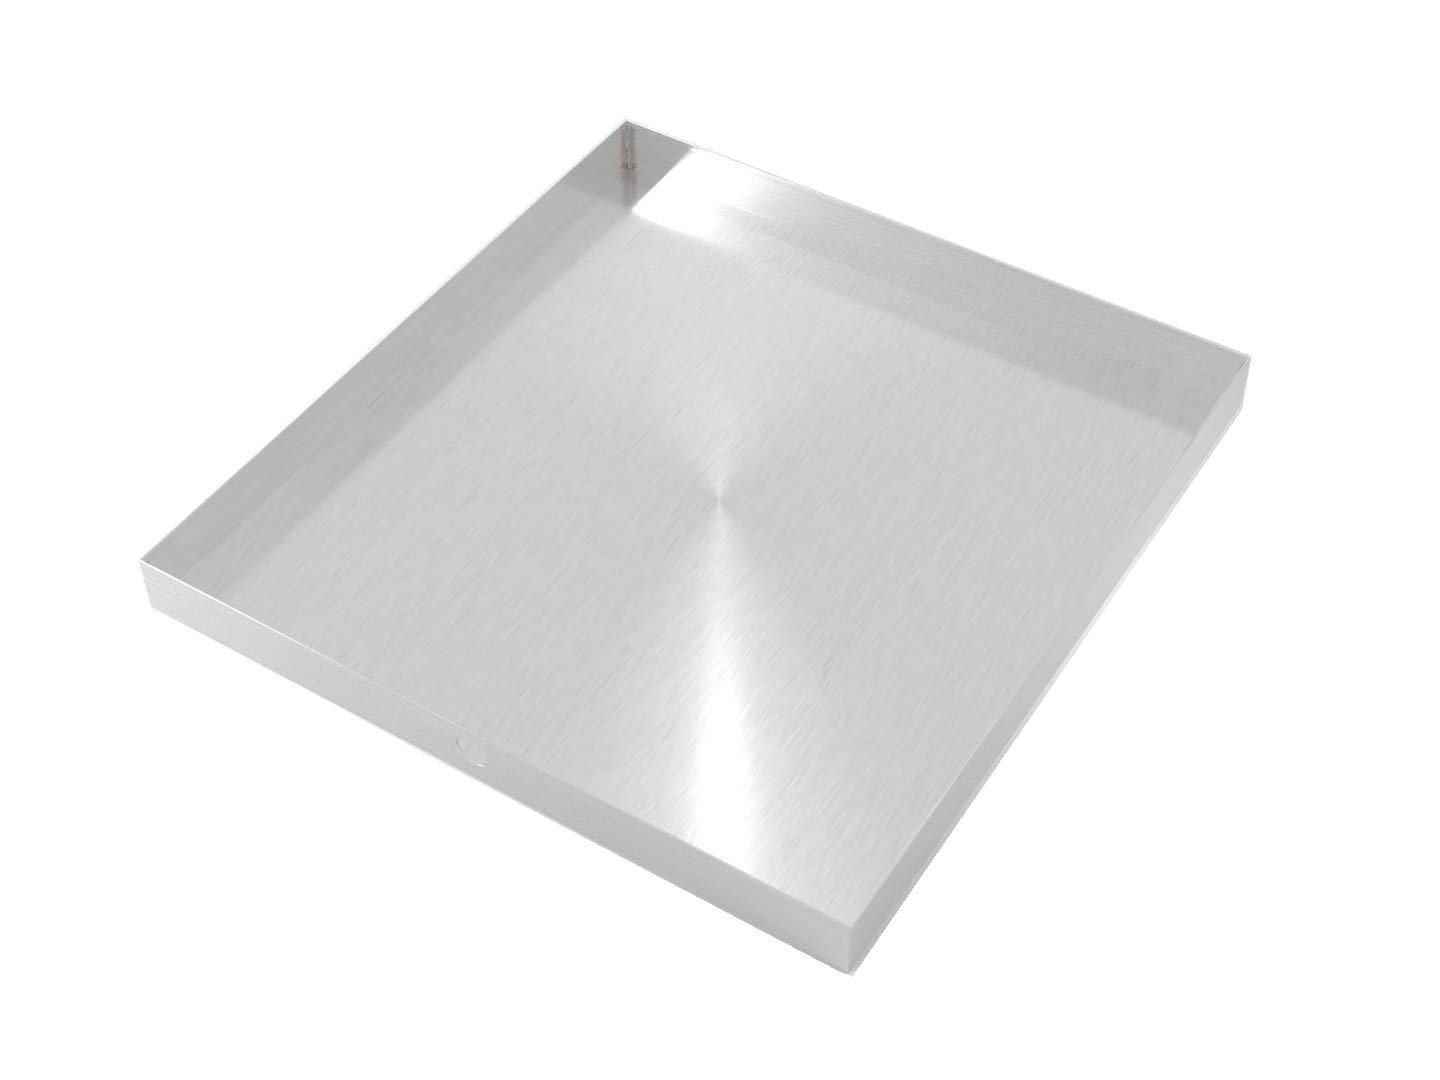 "32"" x 30"" 2.5"" Heavy Duty Washer Machine Drain Pan, Stainless Steel Fine (No Hole)"